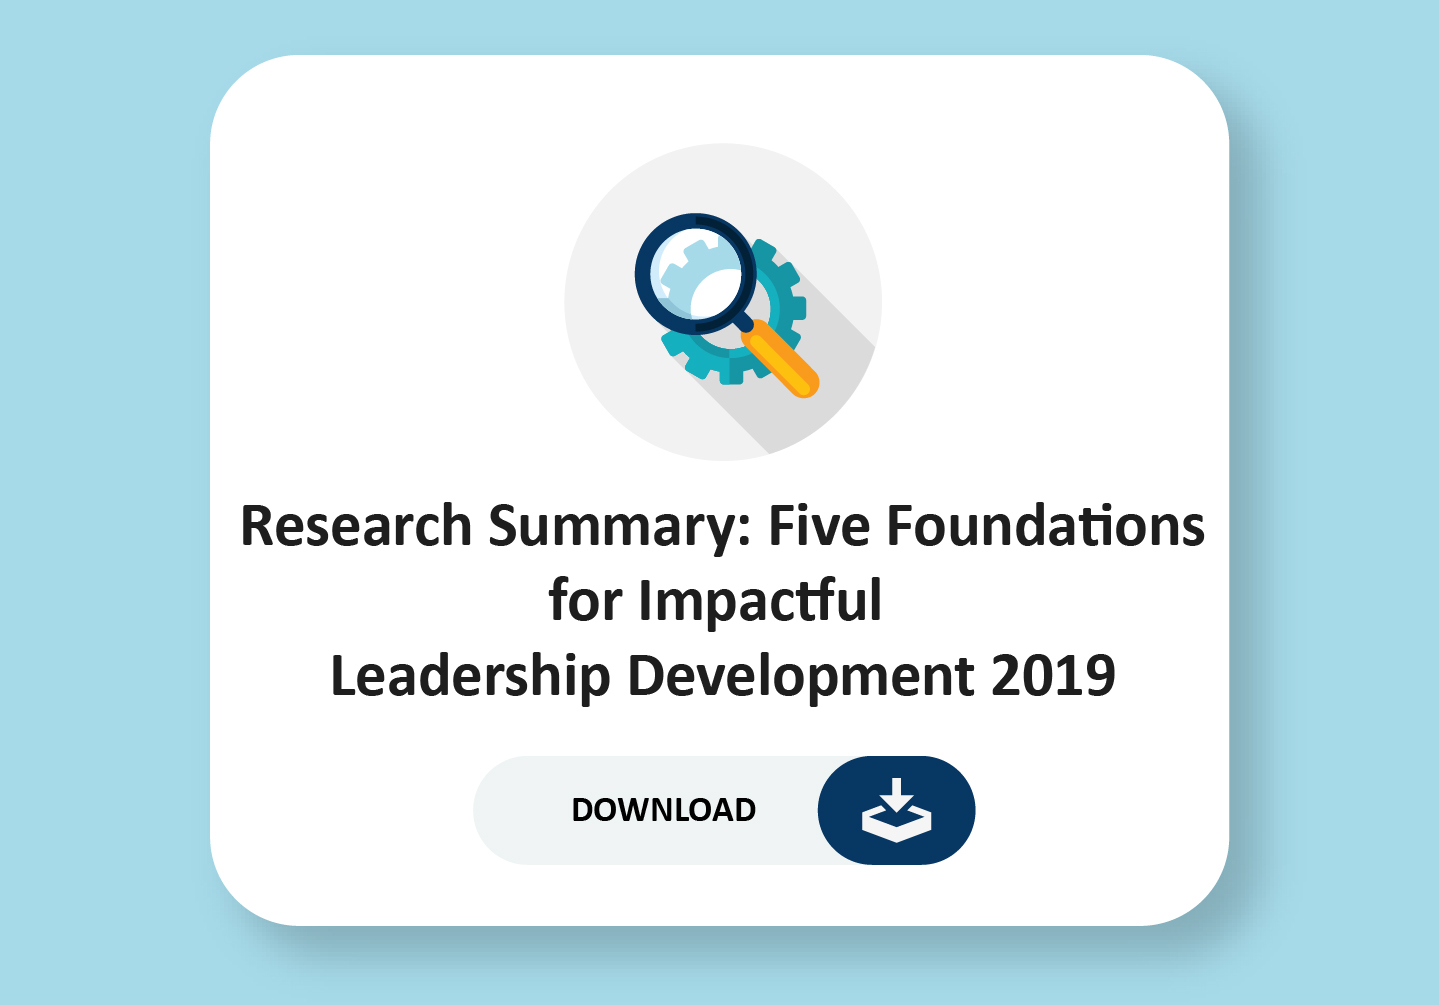 Five foundations for impactful leadership development